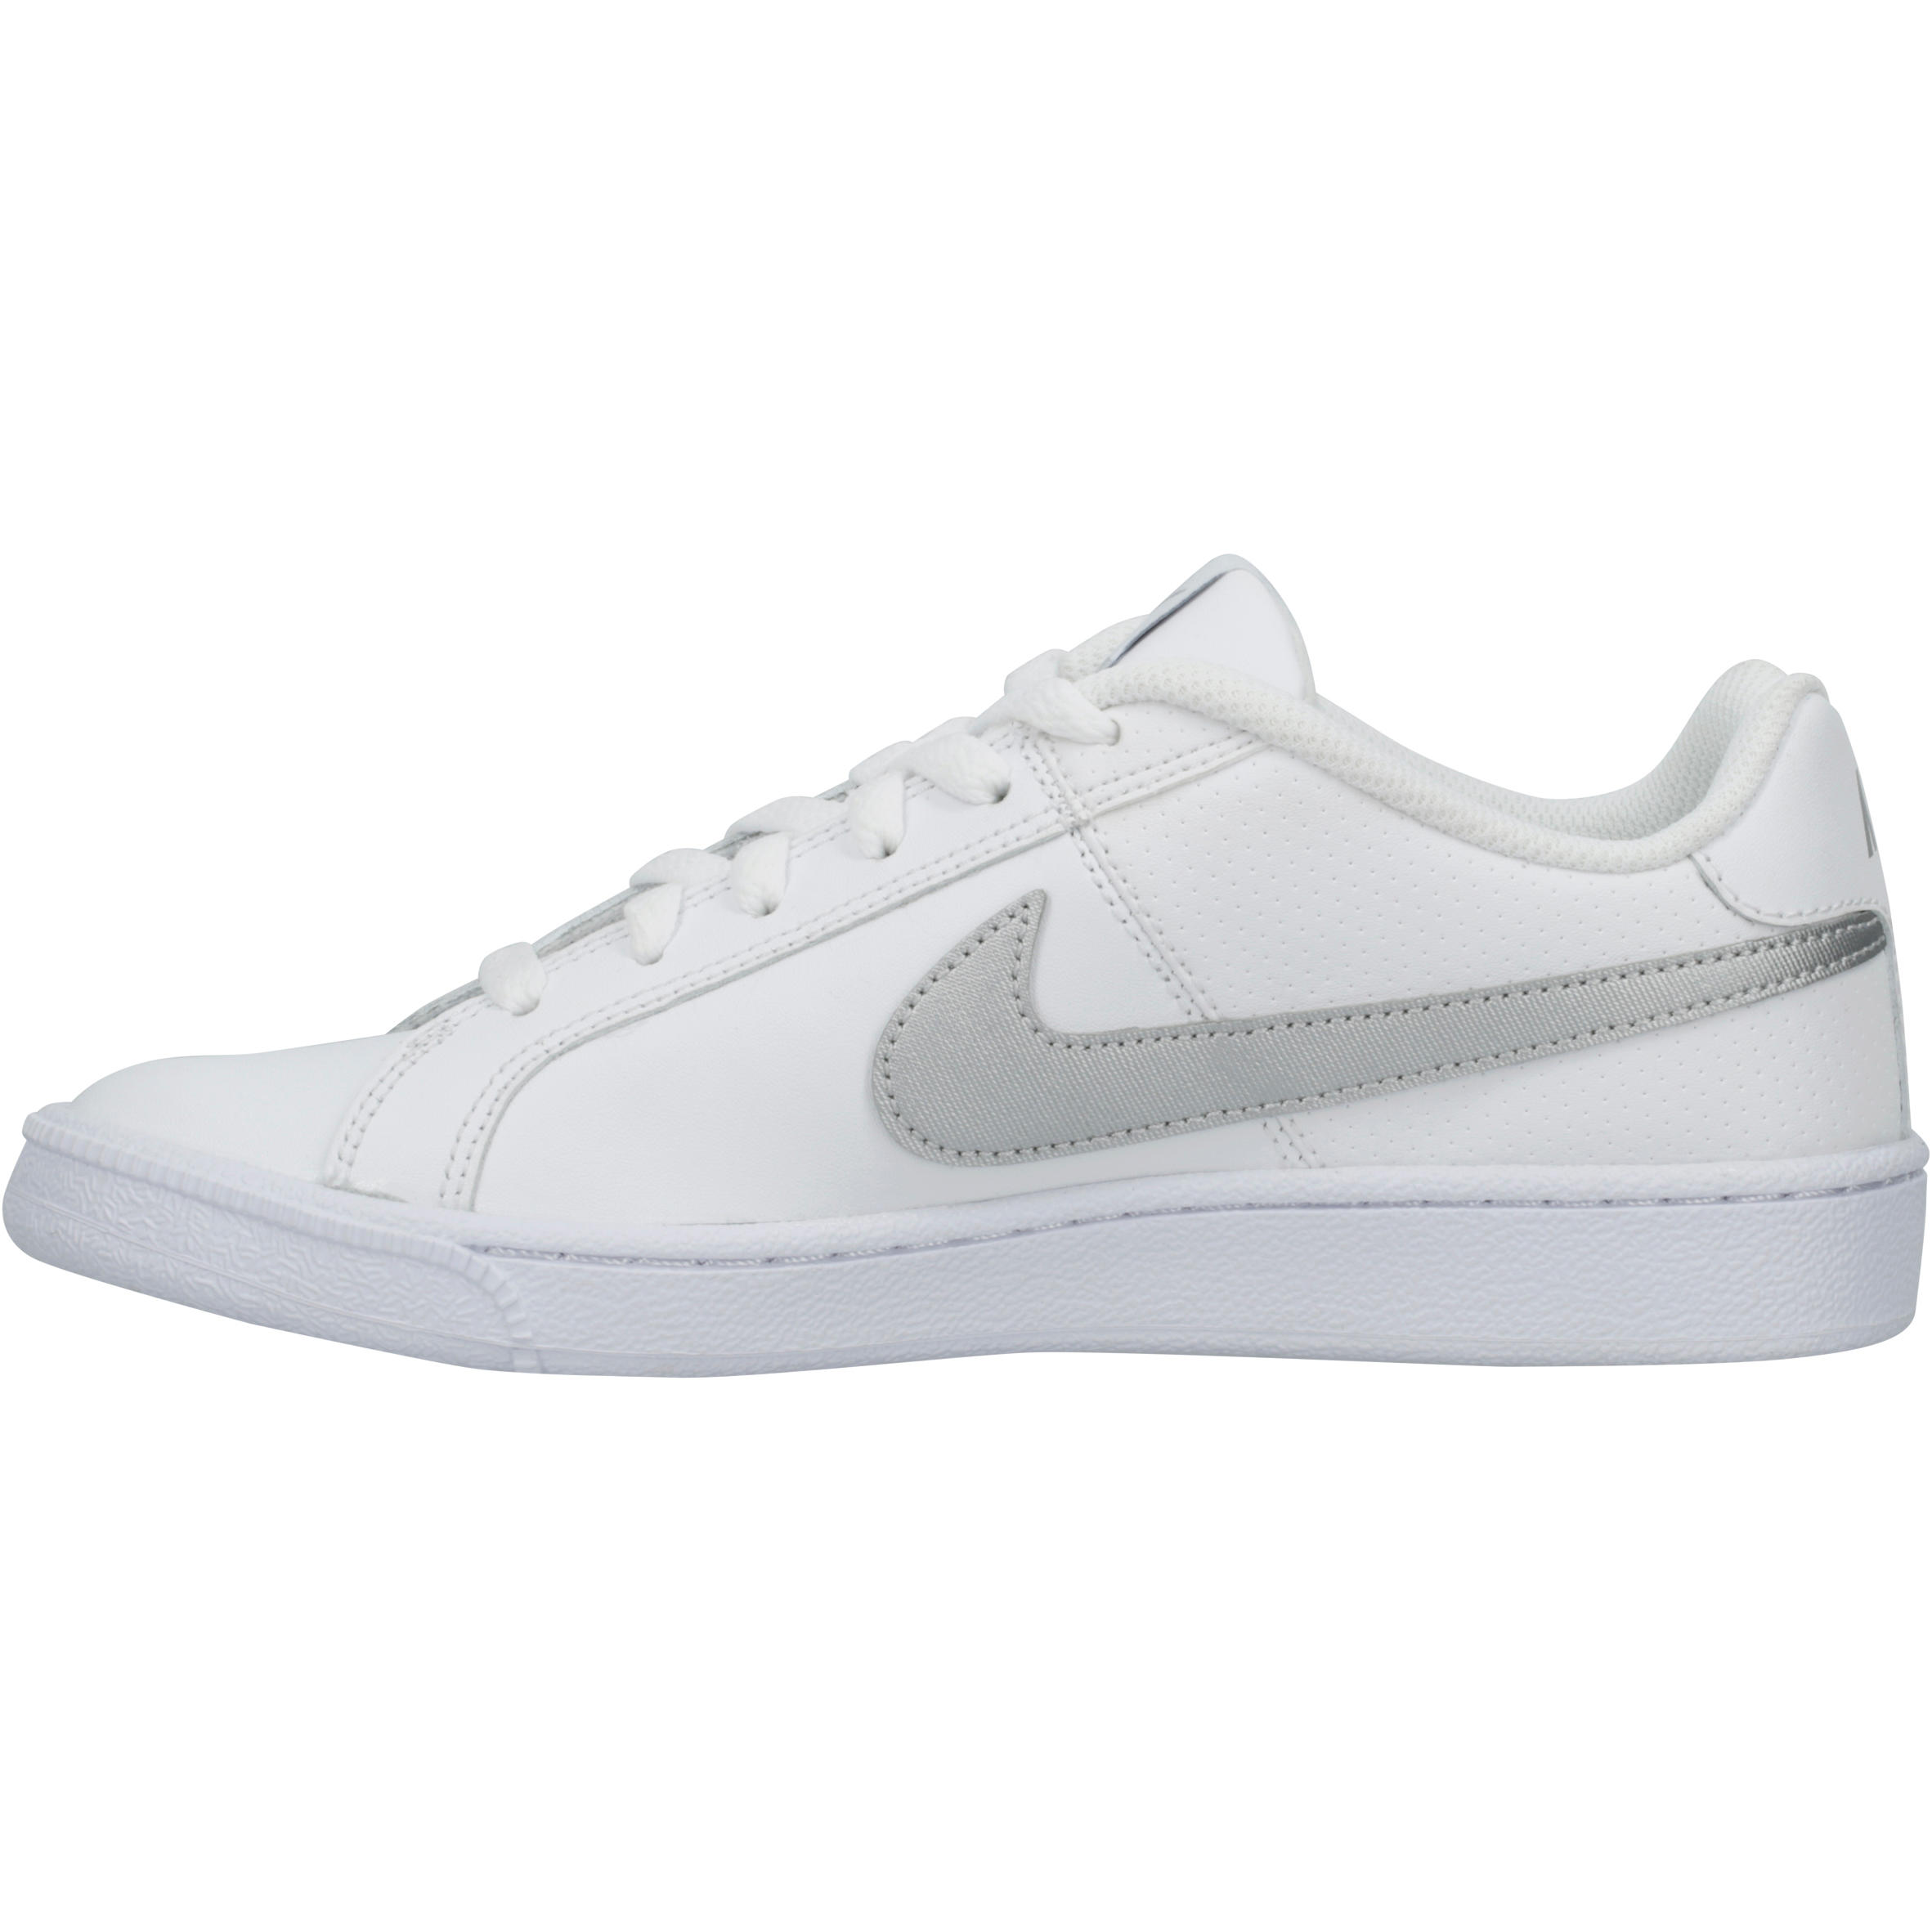 nike blanche femme chaussures